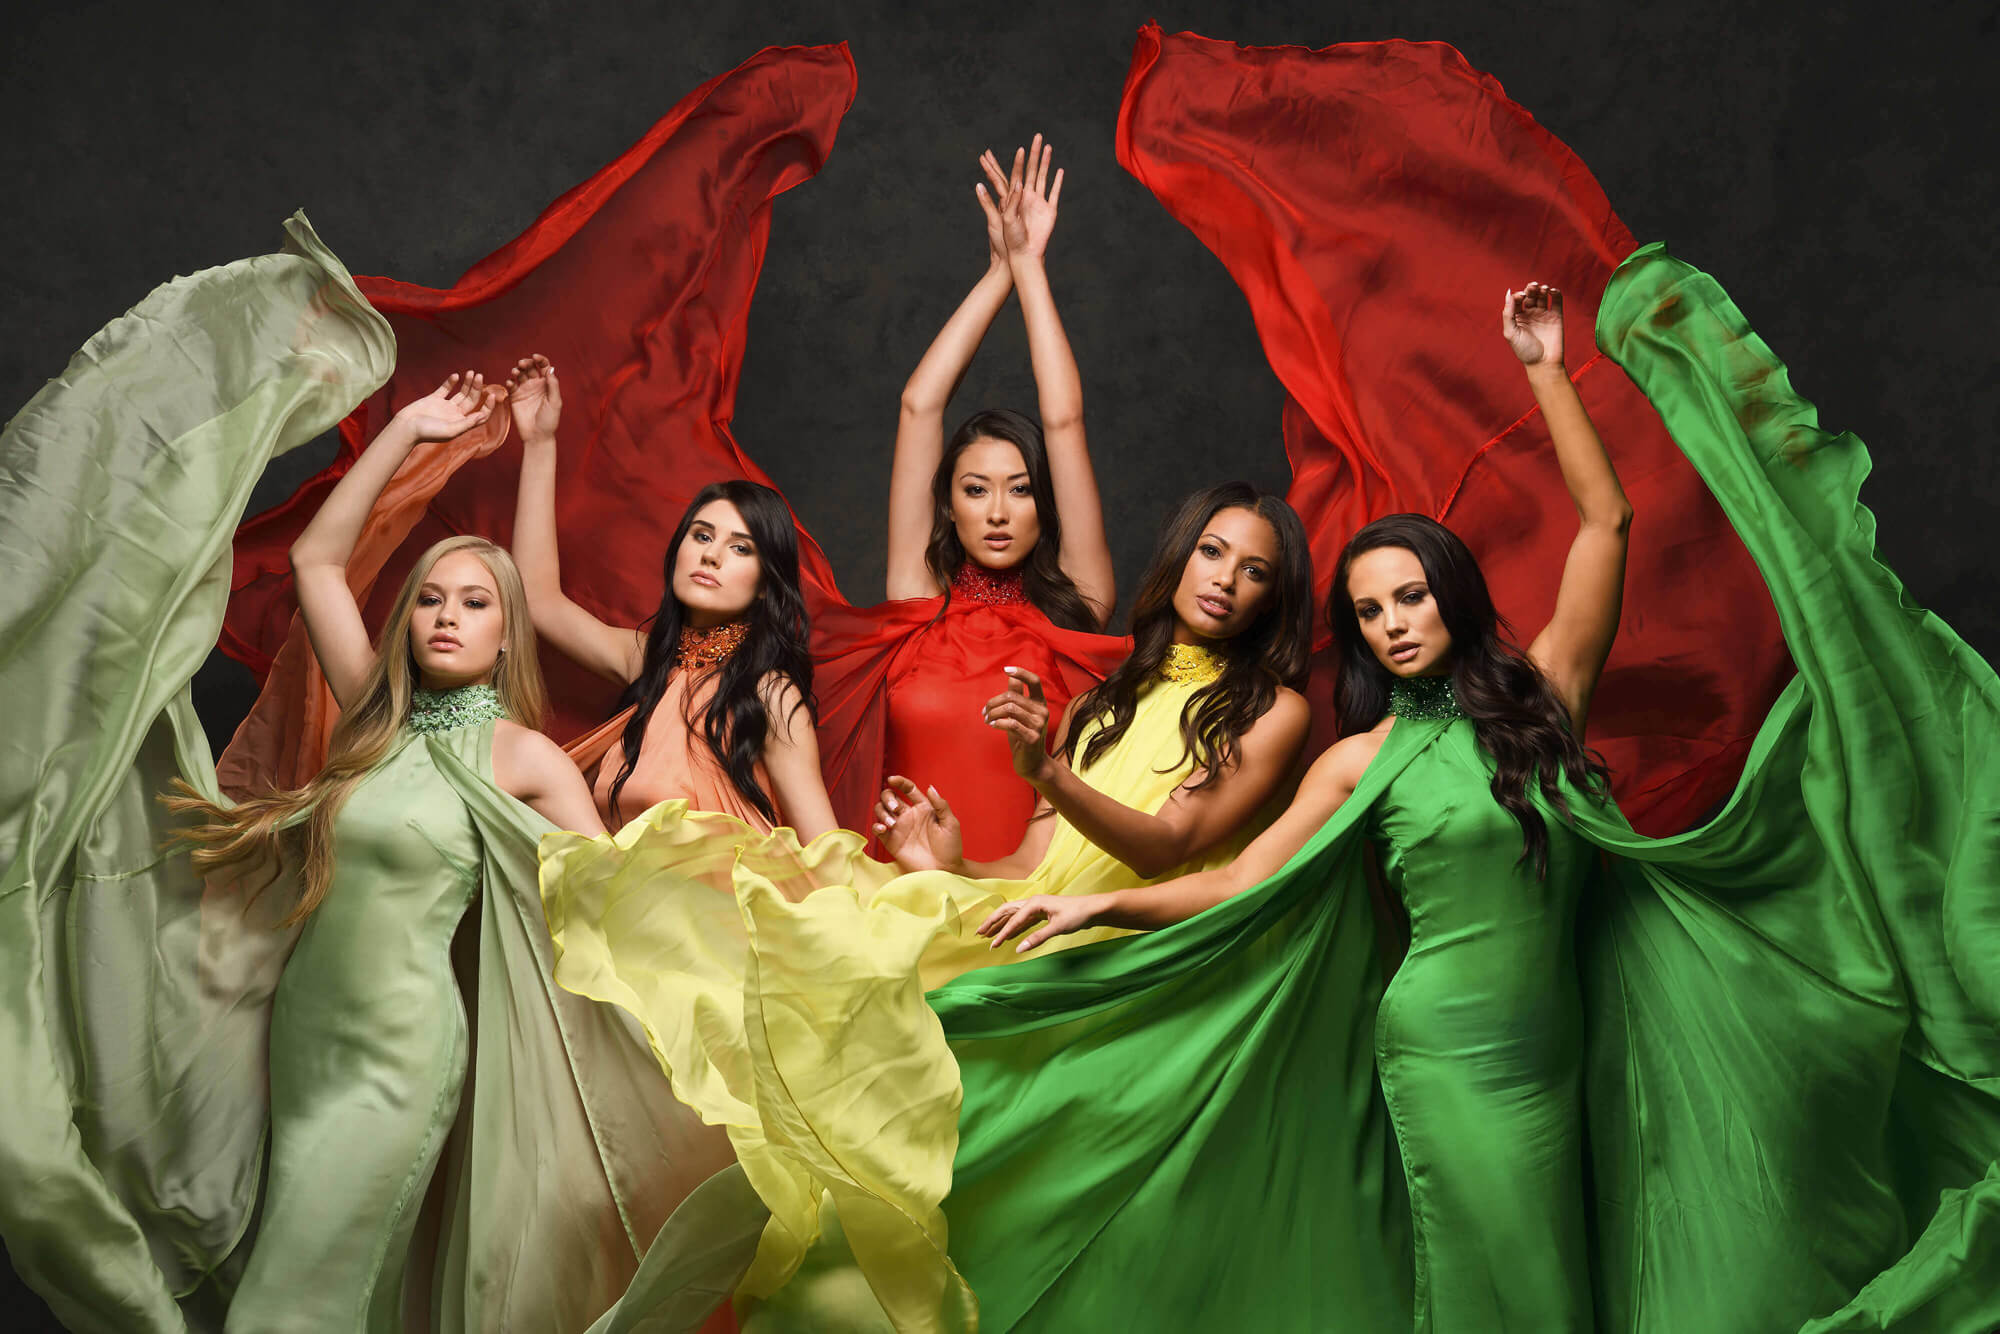 Photo of five models in colorful dresses, taken with the D850 DSLR